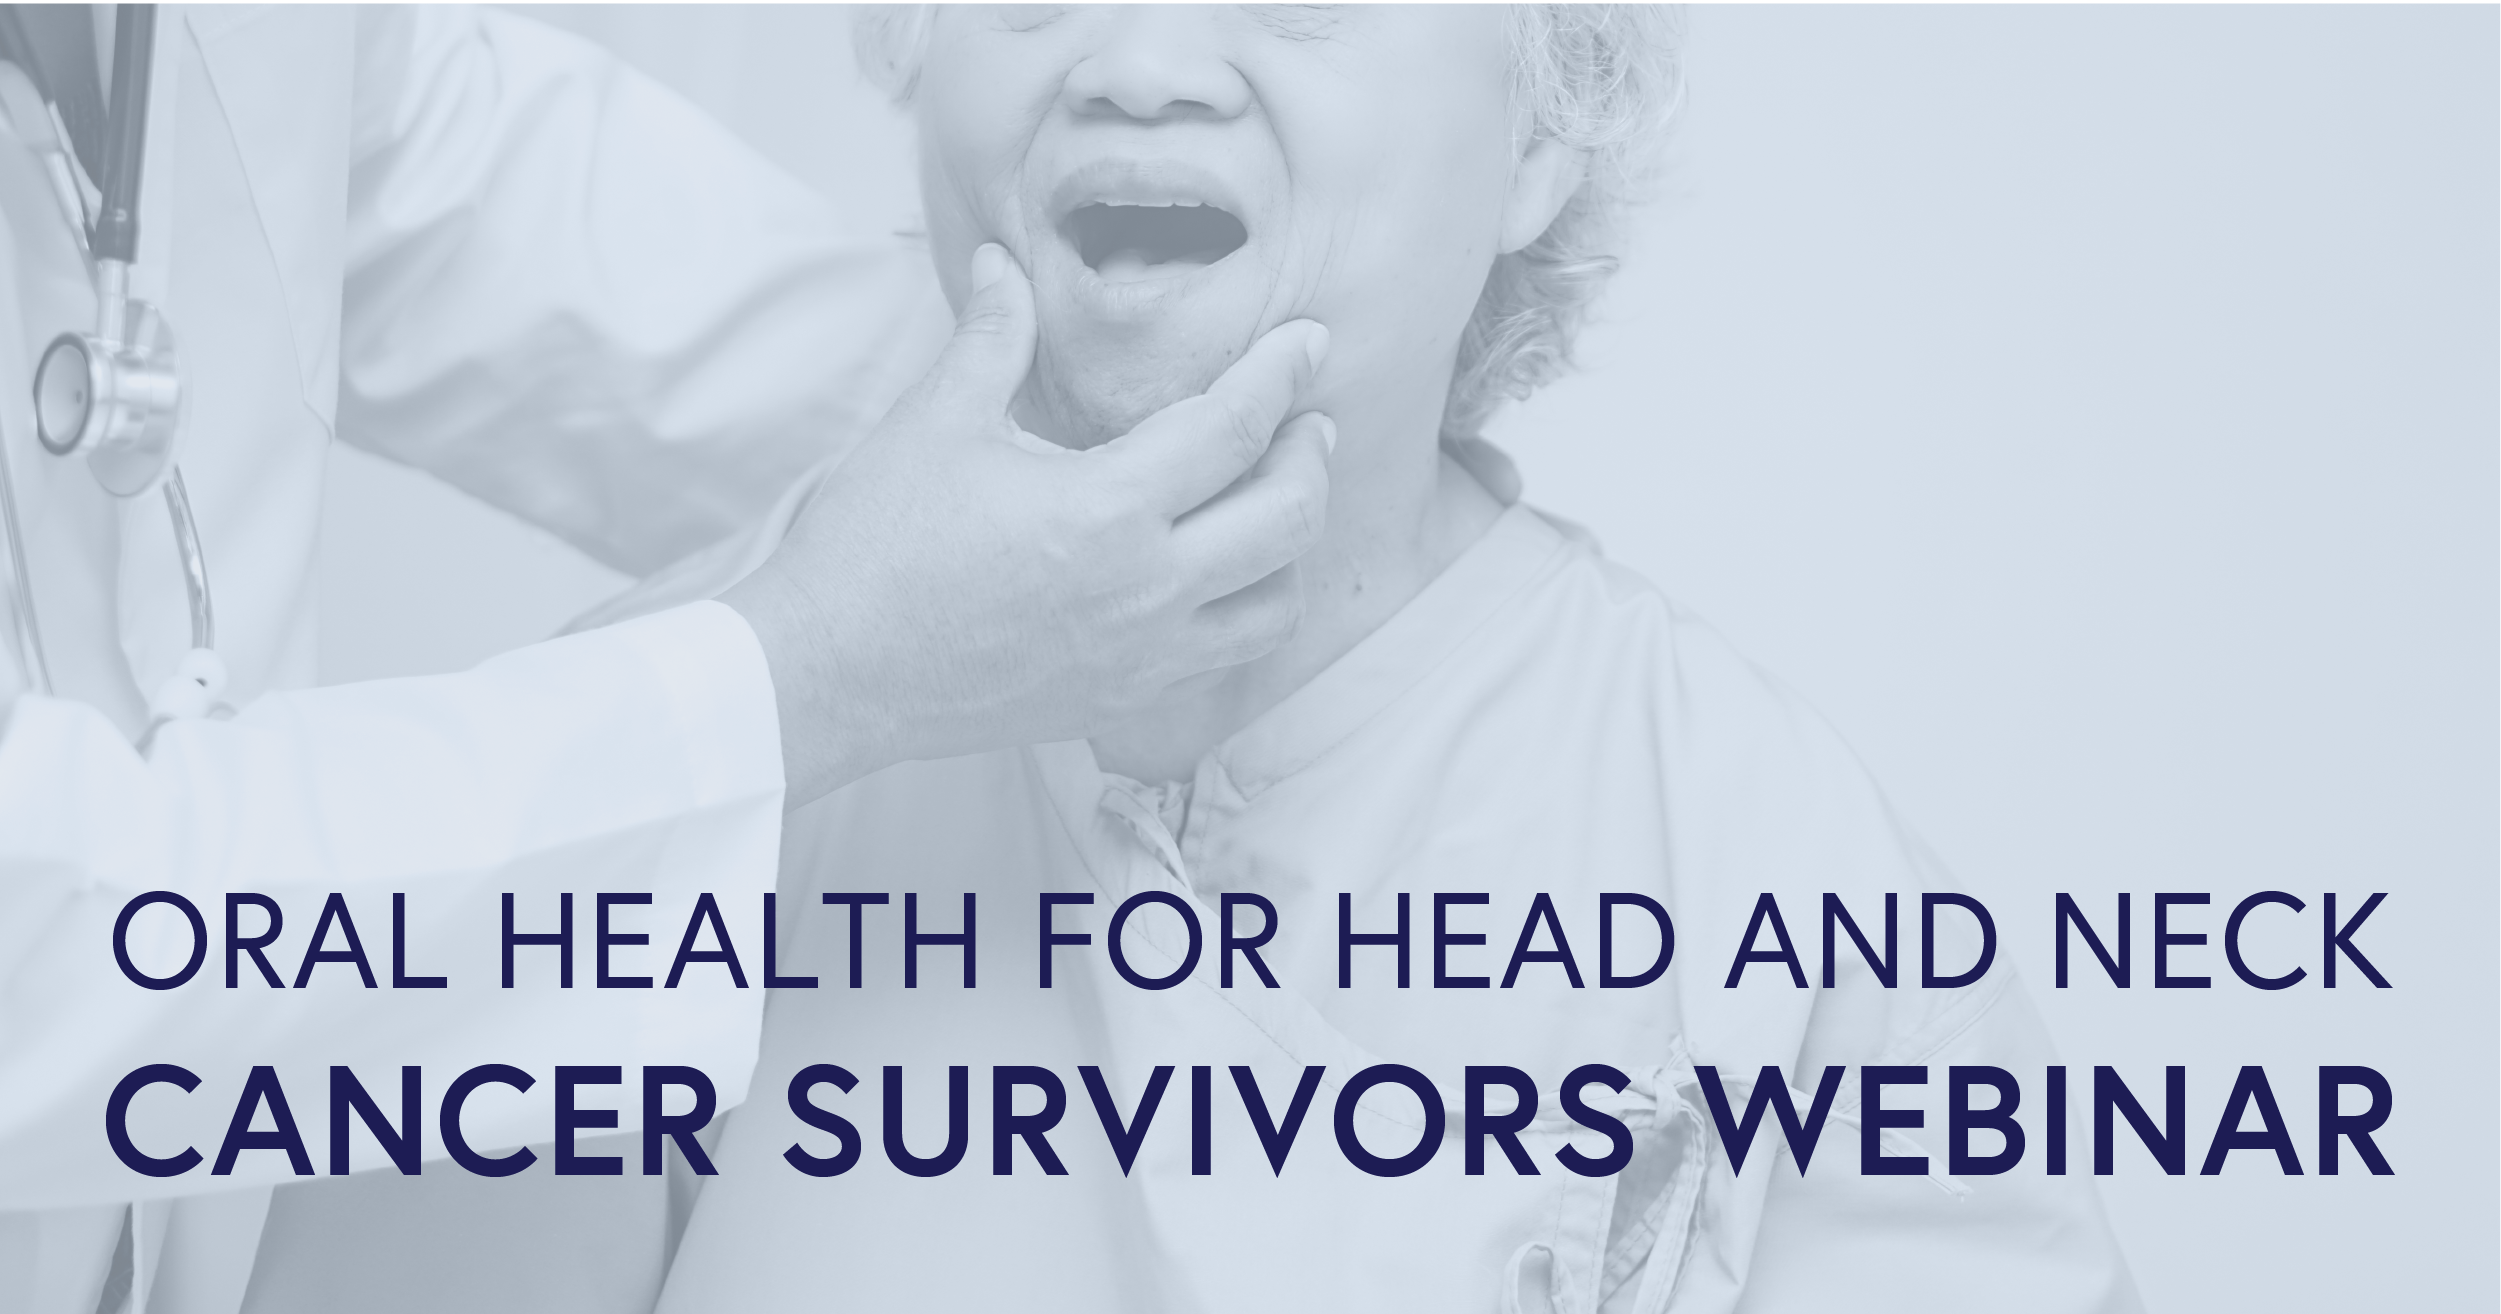 Oral Health for Head and Neck Cancer Survivors Webinar